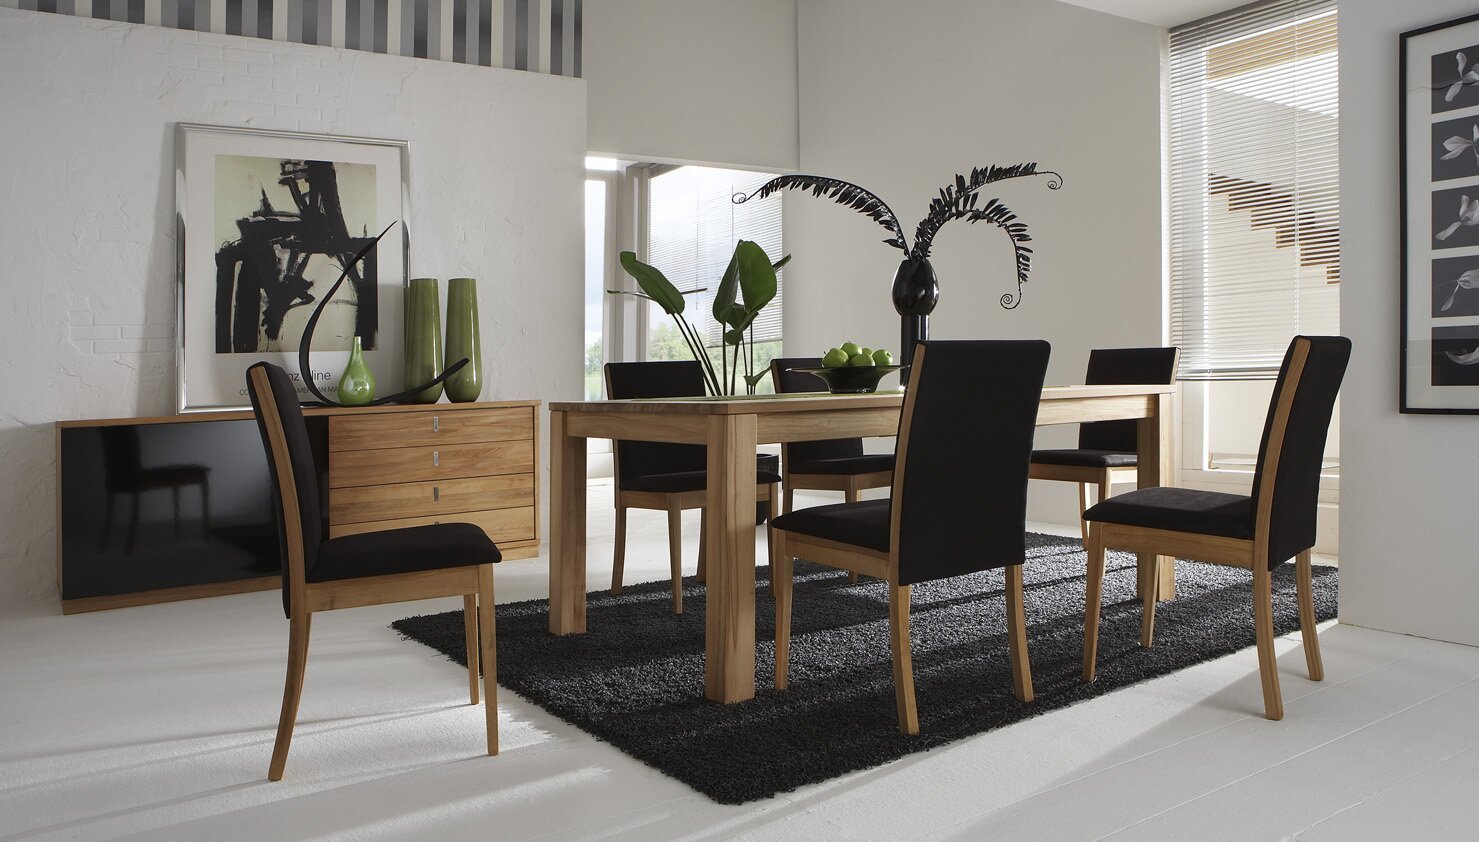 23 modern dining room examples with photos mostbeautifulthings. Black Bedroom Furniture Sets. Home Design Ideas